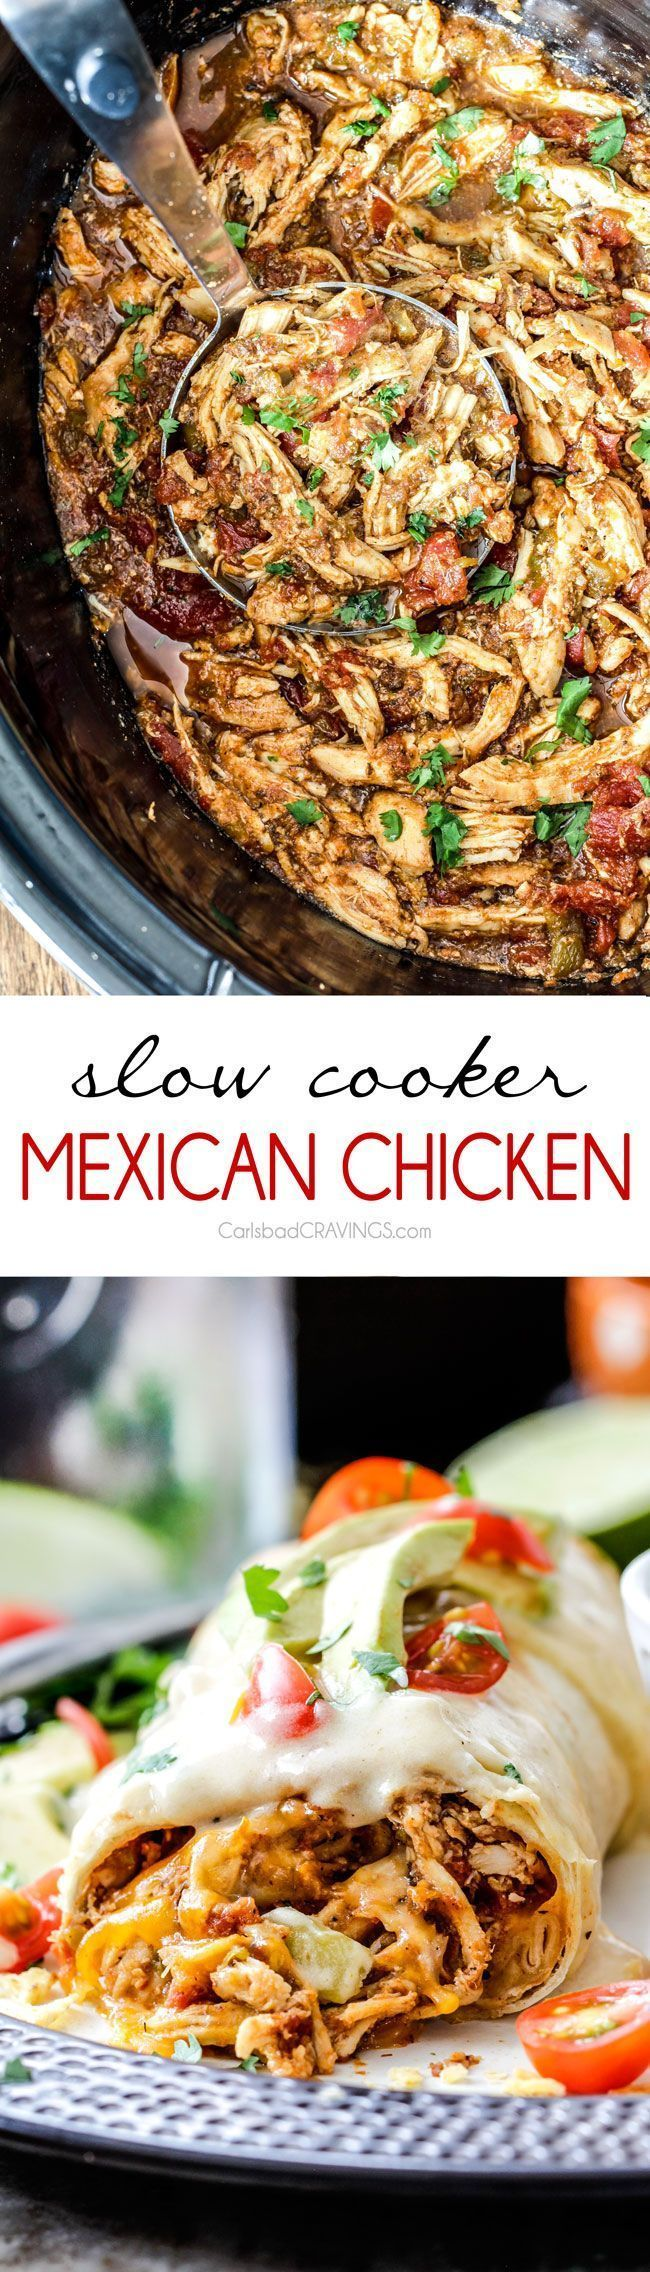 Easy Slow Cooker Shredded Mexican Chicken simmered with Mexican spices, salsa and green chilies for the BEST Mexican chicken perfect for tacos, burritos, tostadas, salads, etc. Couldn't be any easier!